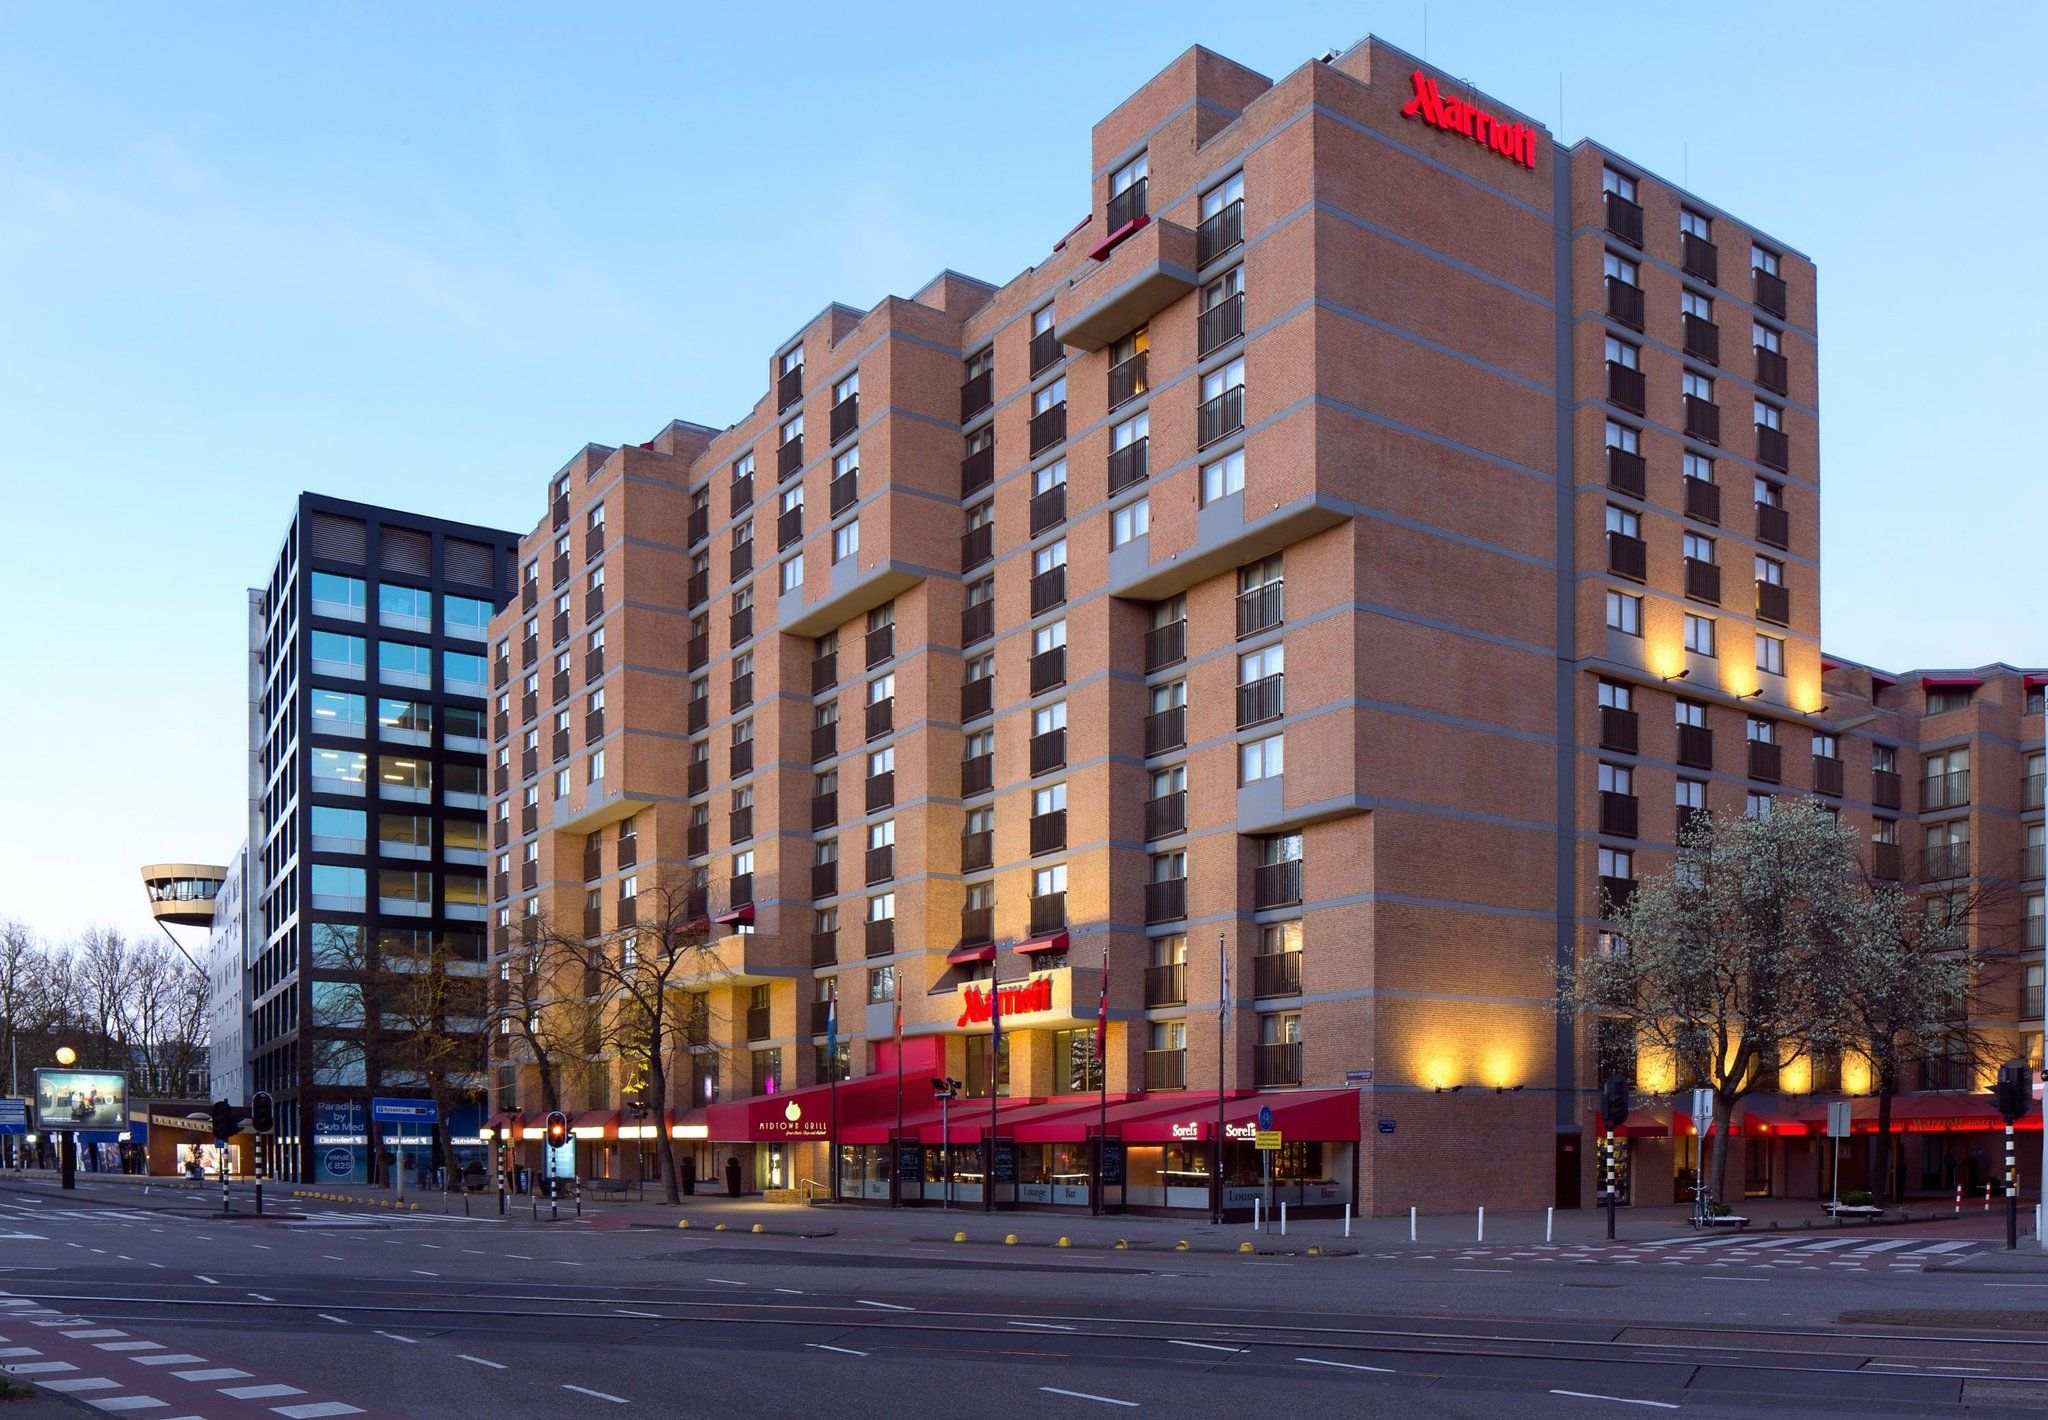 Meeting and event spaces at hilton austria hotels vienna and -  32 Amsterdam Marriott Hotel Meeting Rooms 12 Sleeping Rooms 396